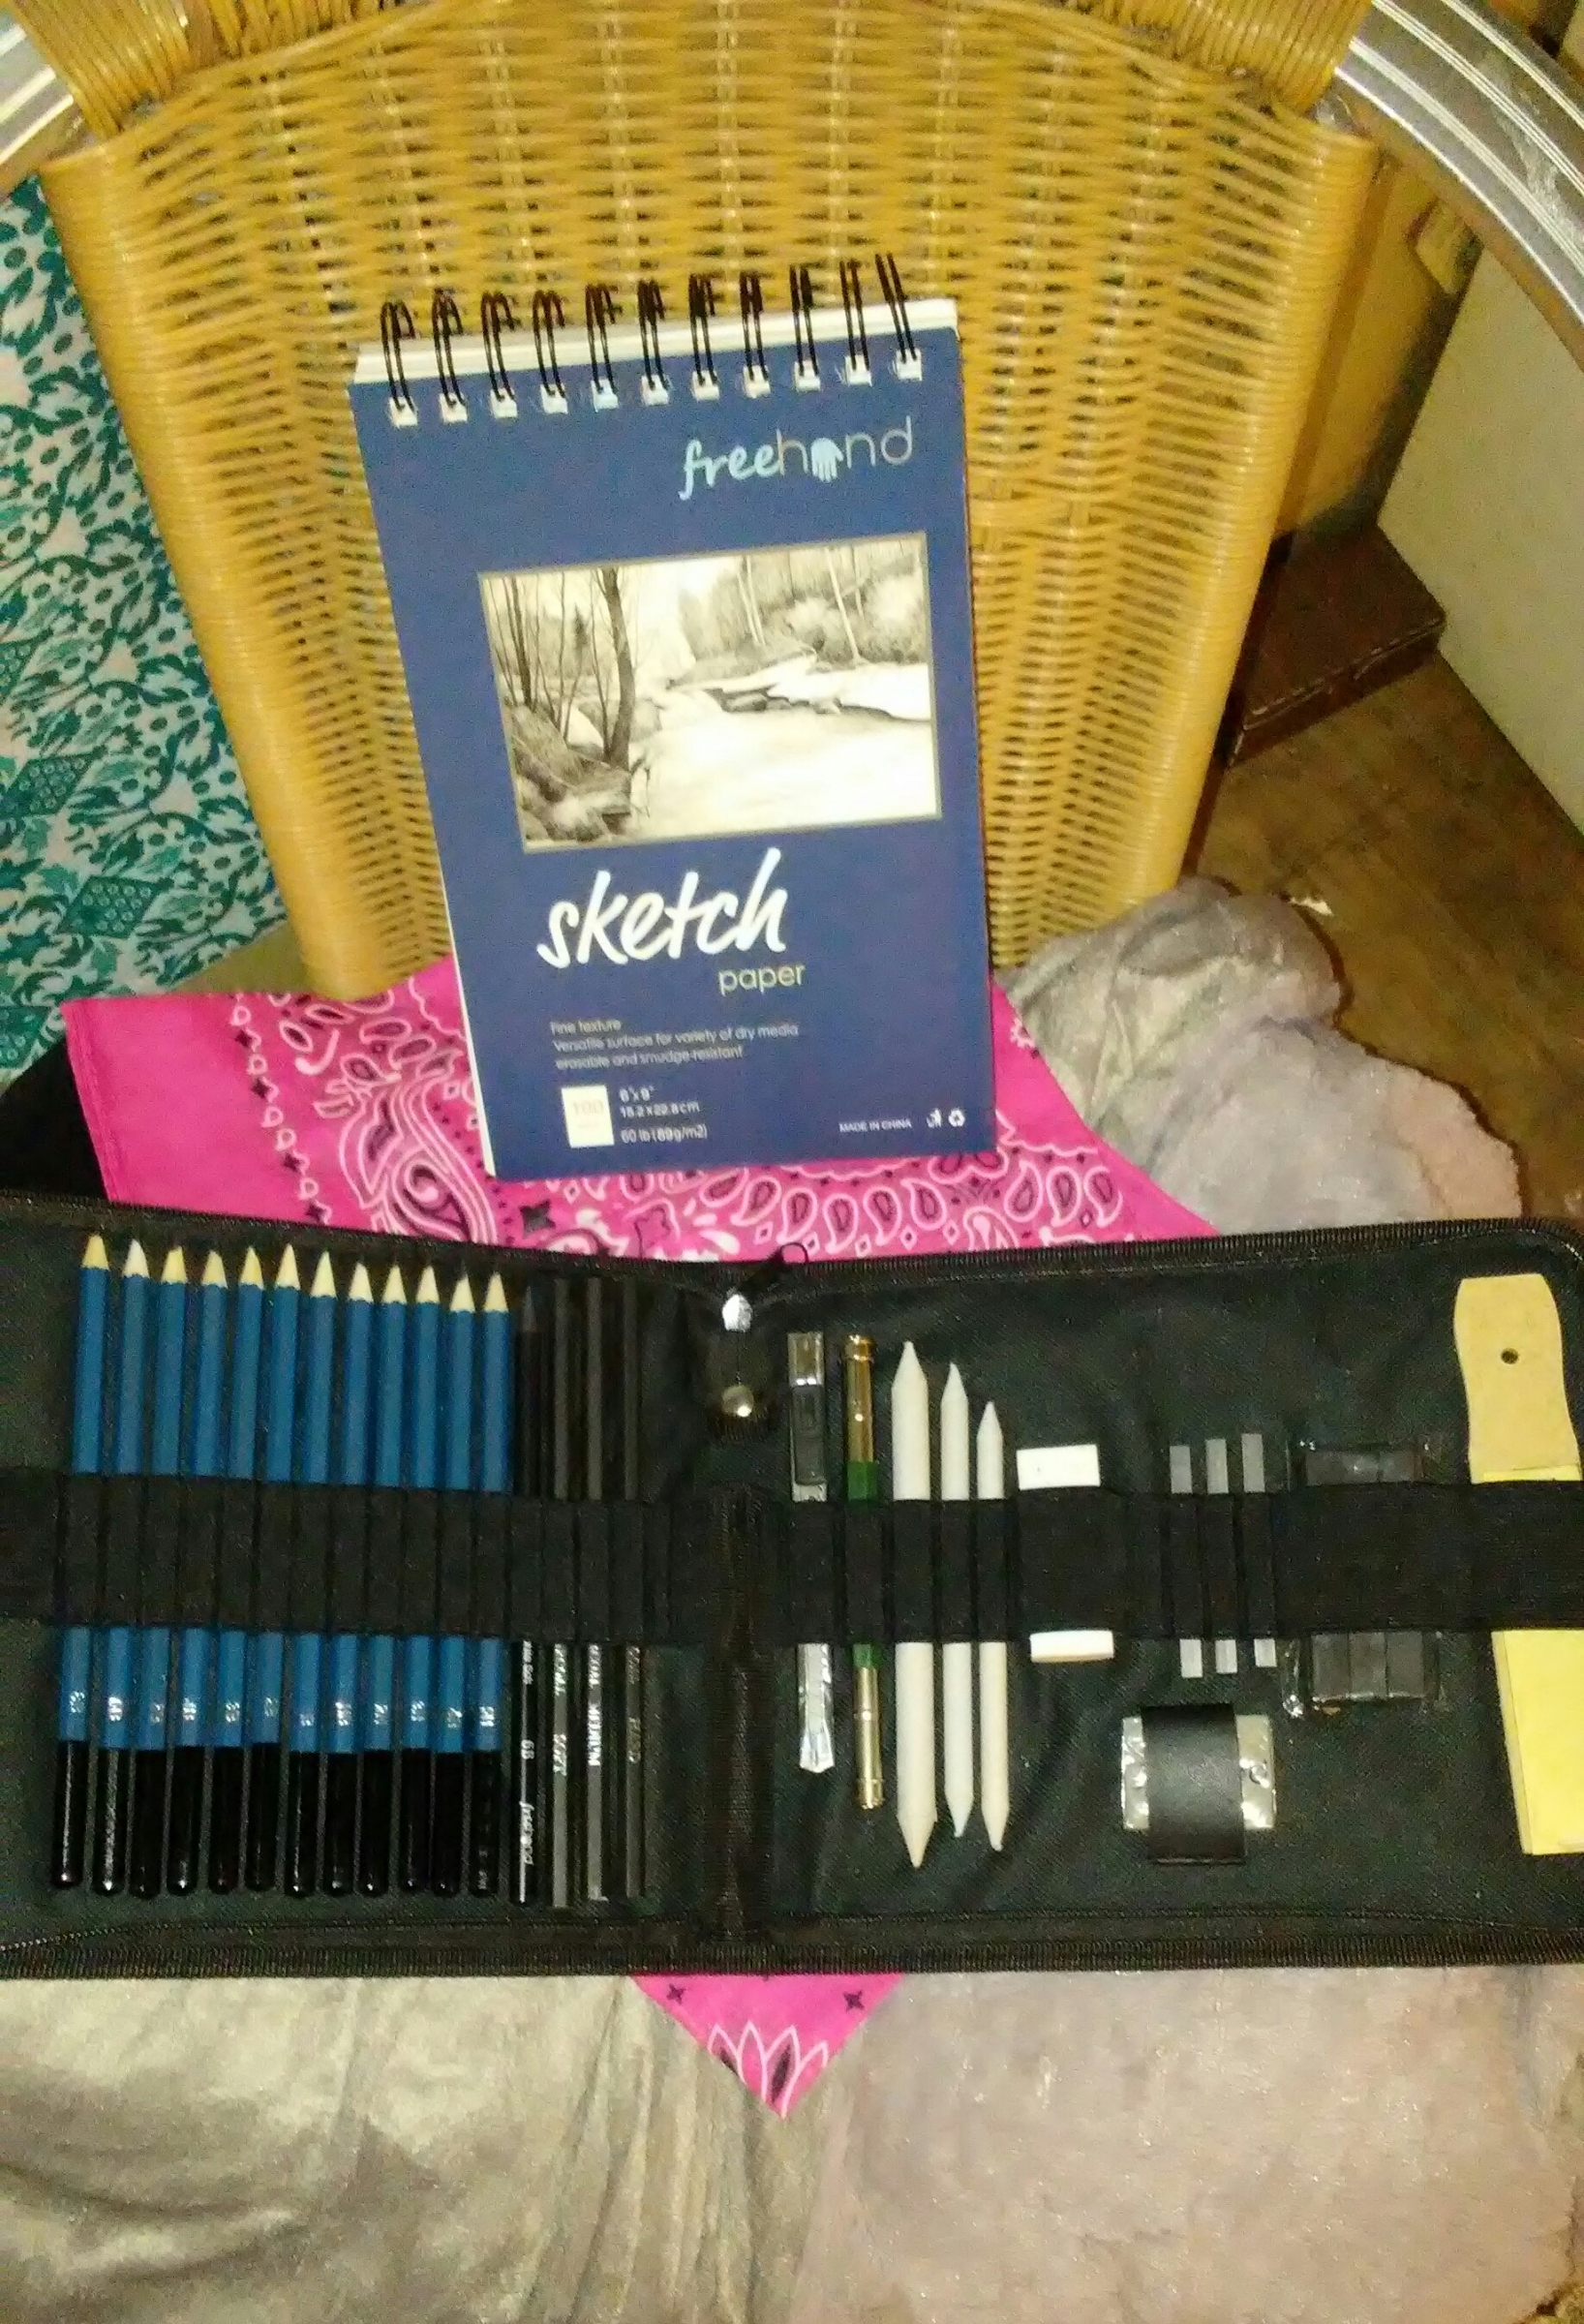 Very high quality drawing/sketch set love it